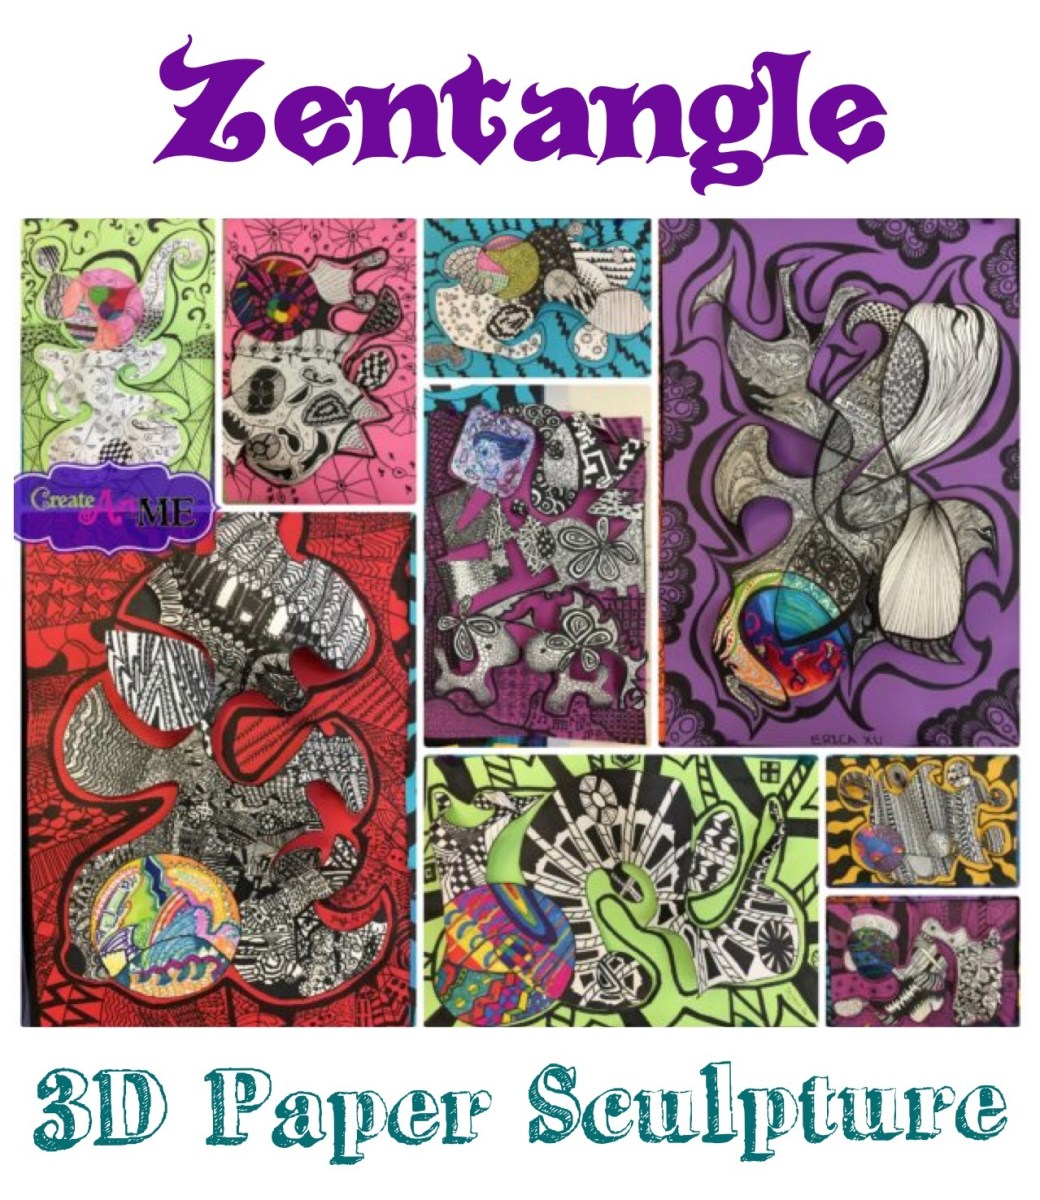 Rhythm and Emphasis - Zentangle 3D Paper Sculpture